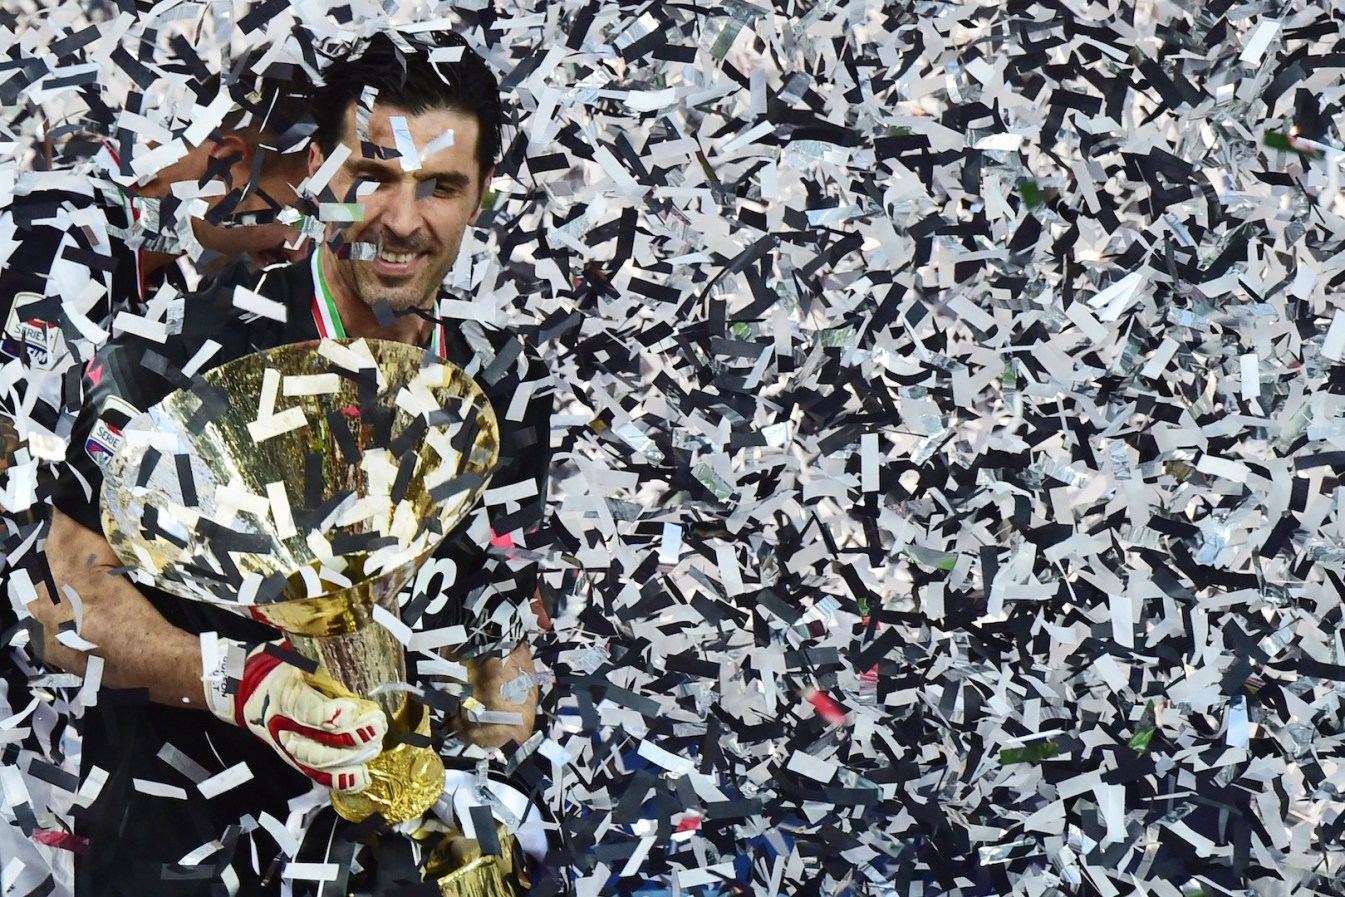 Juventus' goalkeeper and captain Gianluigi Buffon celebrates with the Italian League's trophy during a ceremony following the Italian Serie A football match Juventus vs Napoli on May 23, 2015 at the Juventus stadium in Turin. Juventus won the Coppa Italia on May 20, 2015 and the Italian League today after their 3-1 victory over Napoli. AFP PHOTO / GIUSEPPE CACACE (Photo credit should read GIUSEPPE CACACE/AFP/Getty Images)